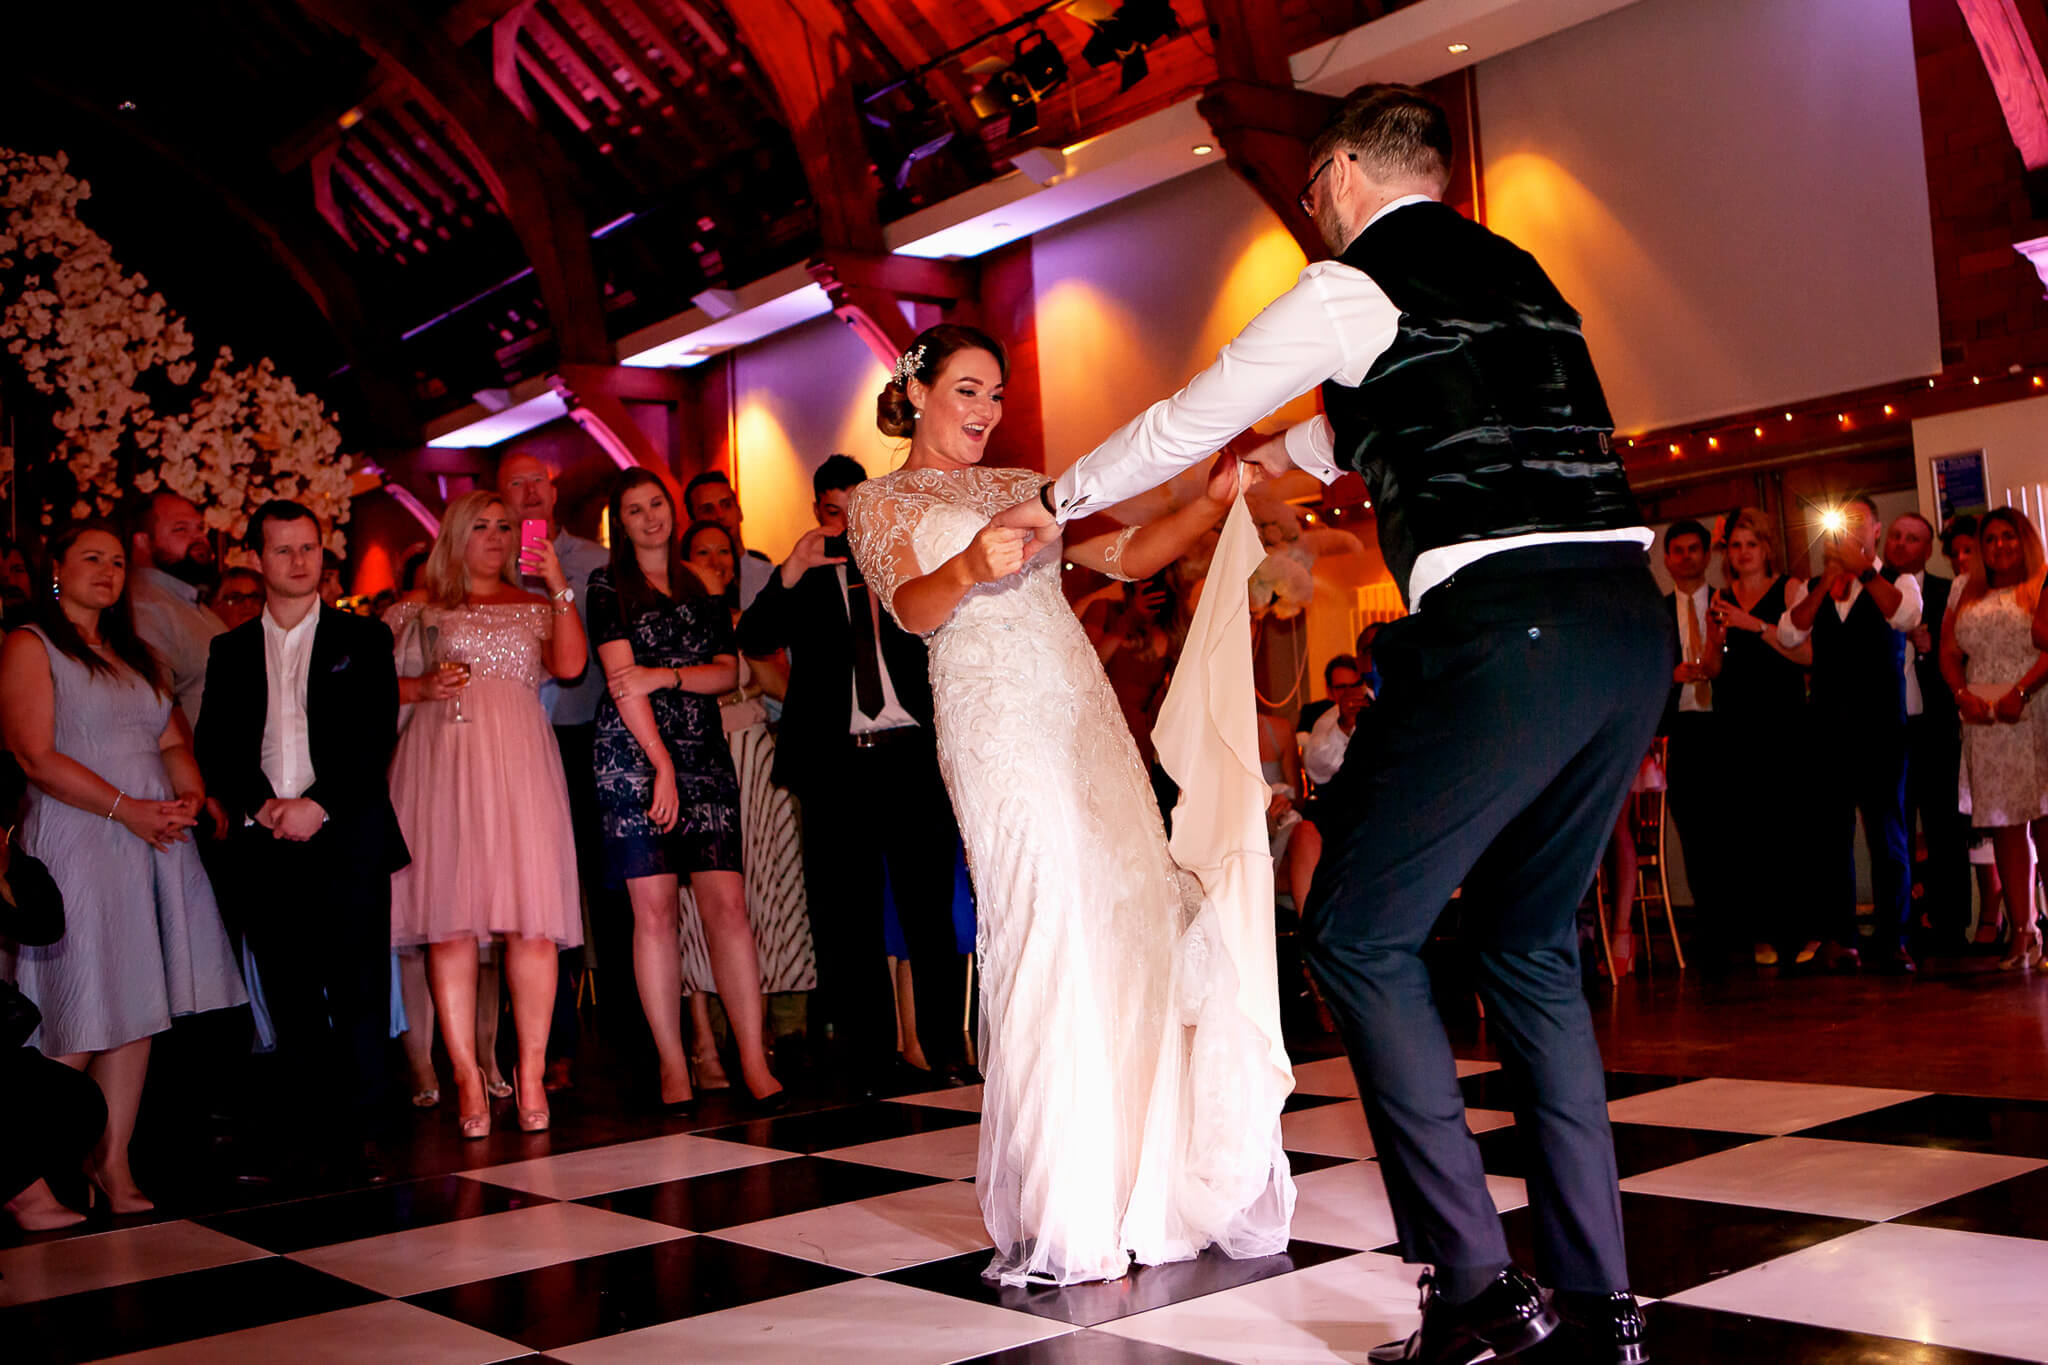 bolton-school-wedding-photographer-stanbury-photography-041